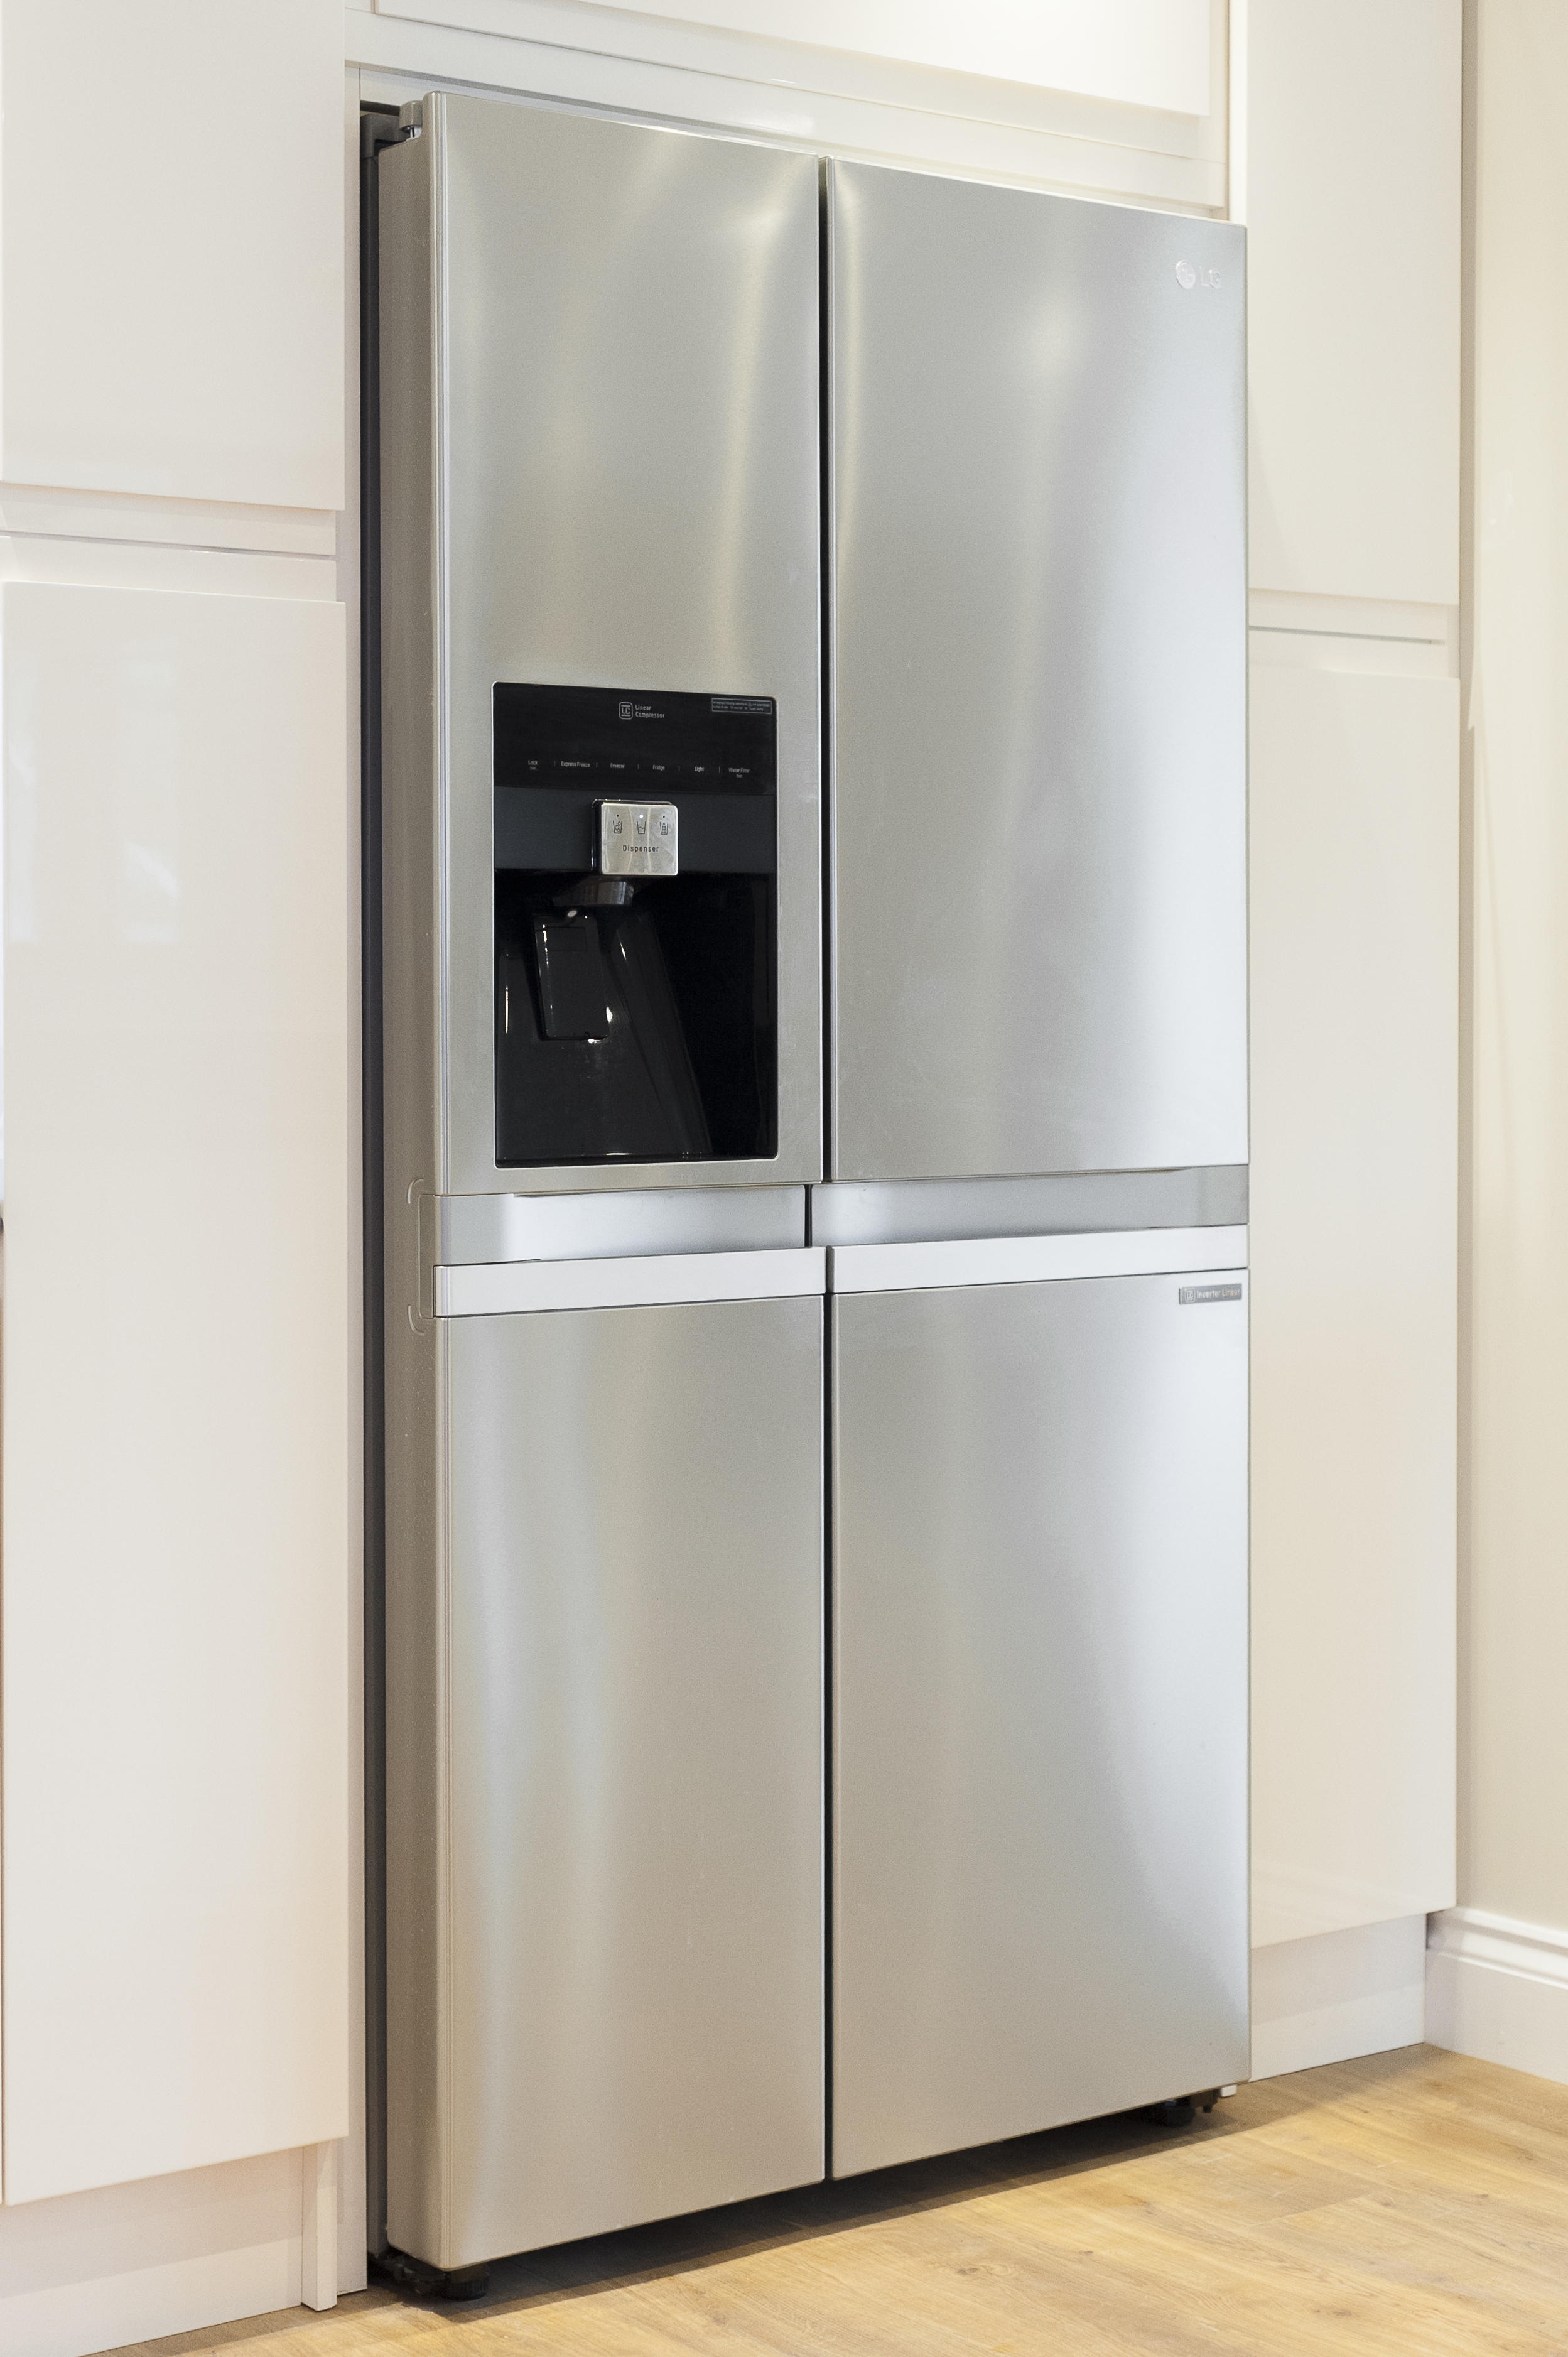 Double Chrome Fronted Fridge Freezer with Ice/Water Dispenser